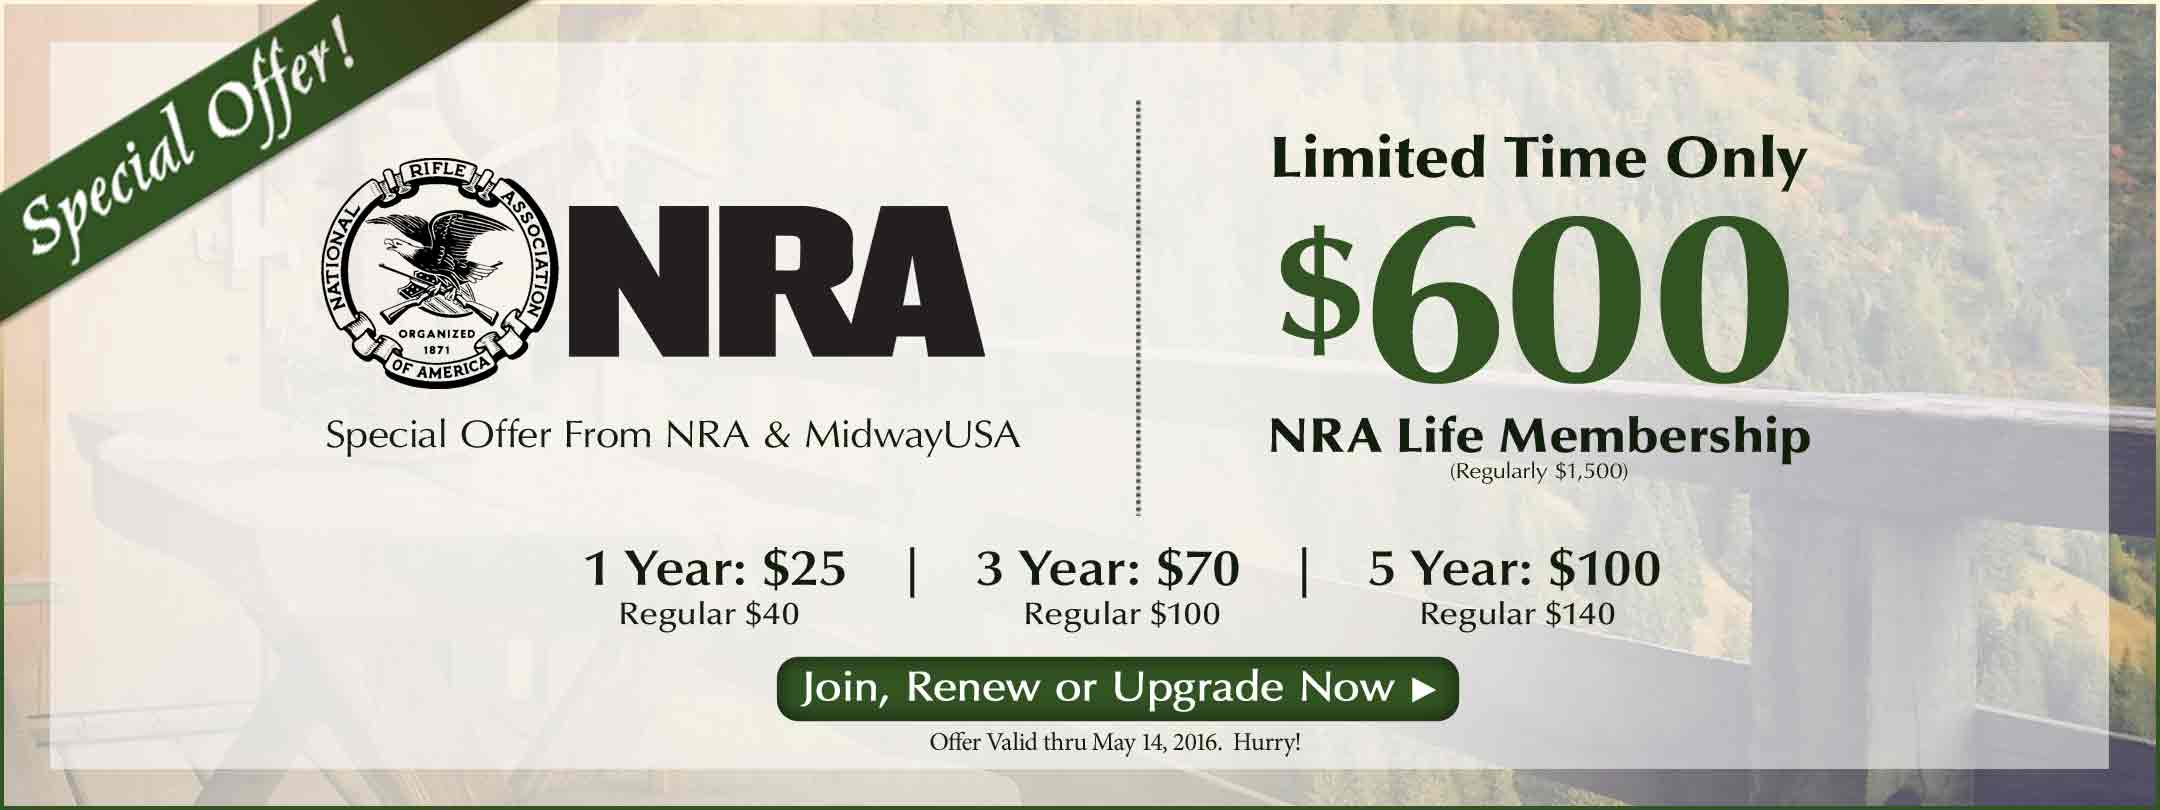 Save on Your NRA Life Membership